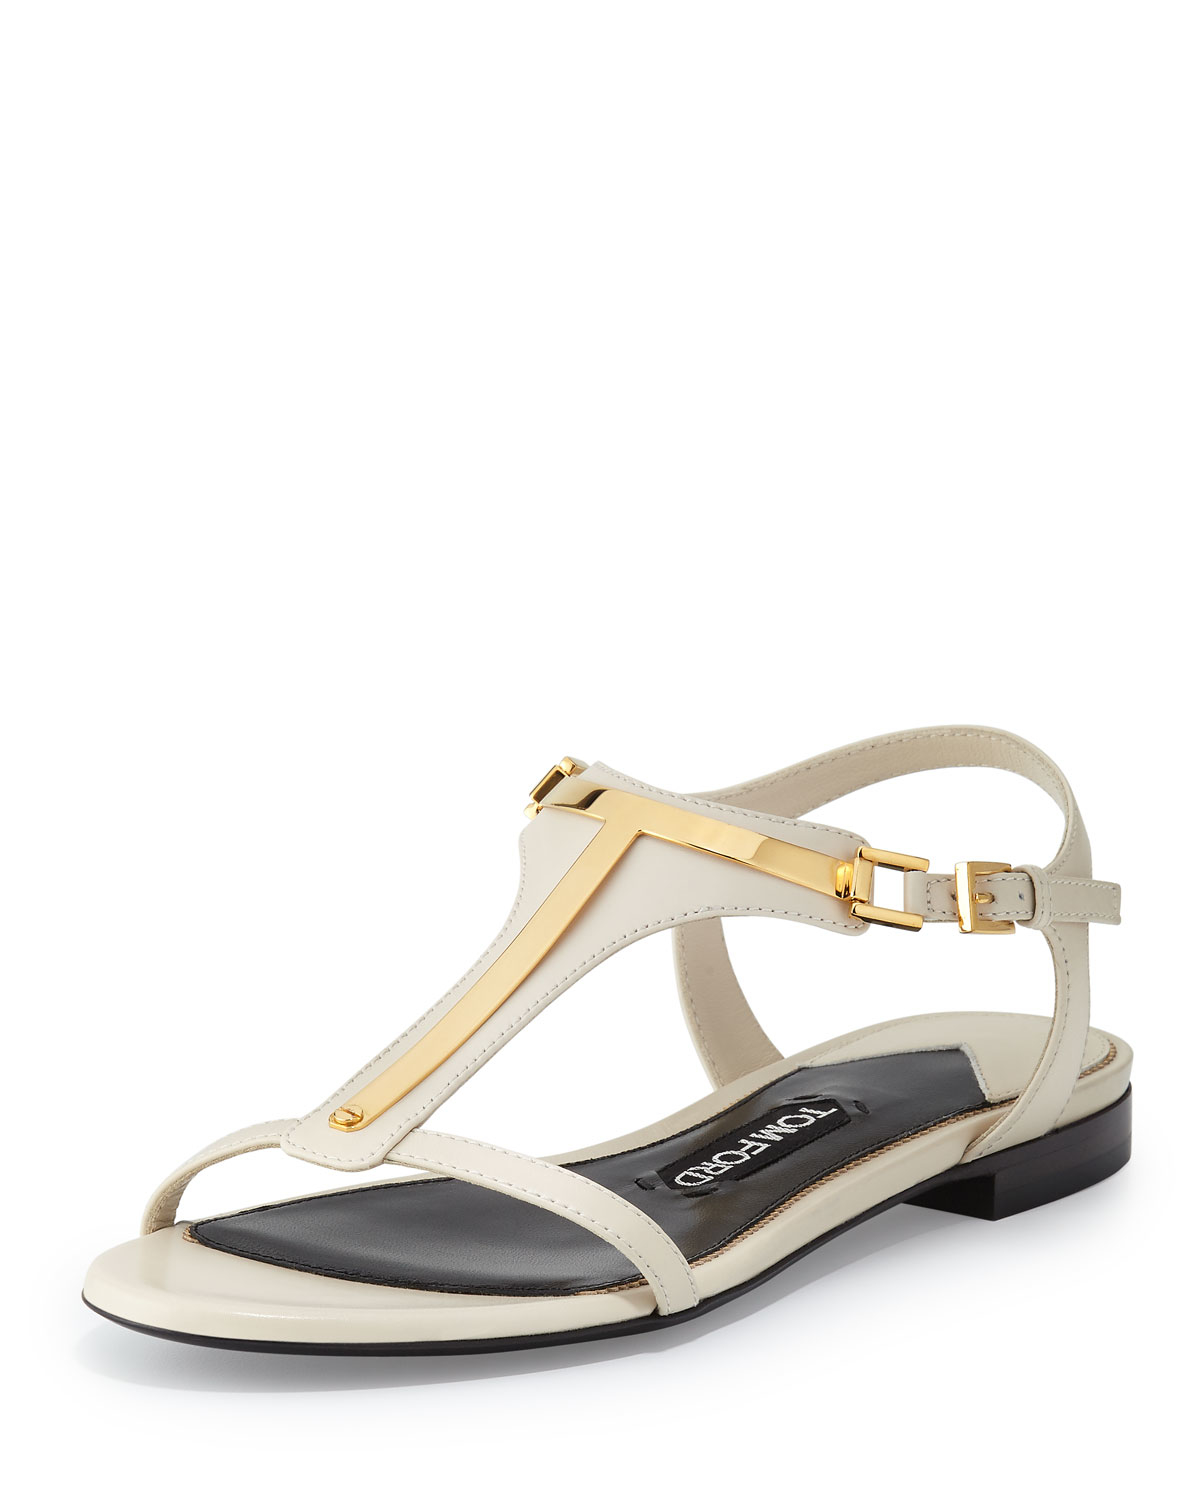 tom ford metallic t leather sandal in white lyst